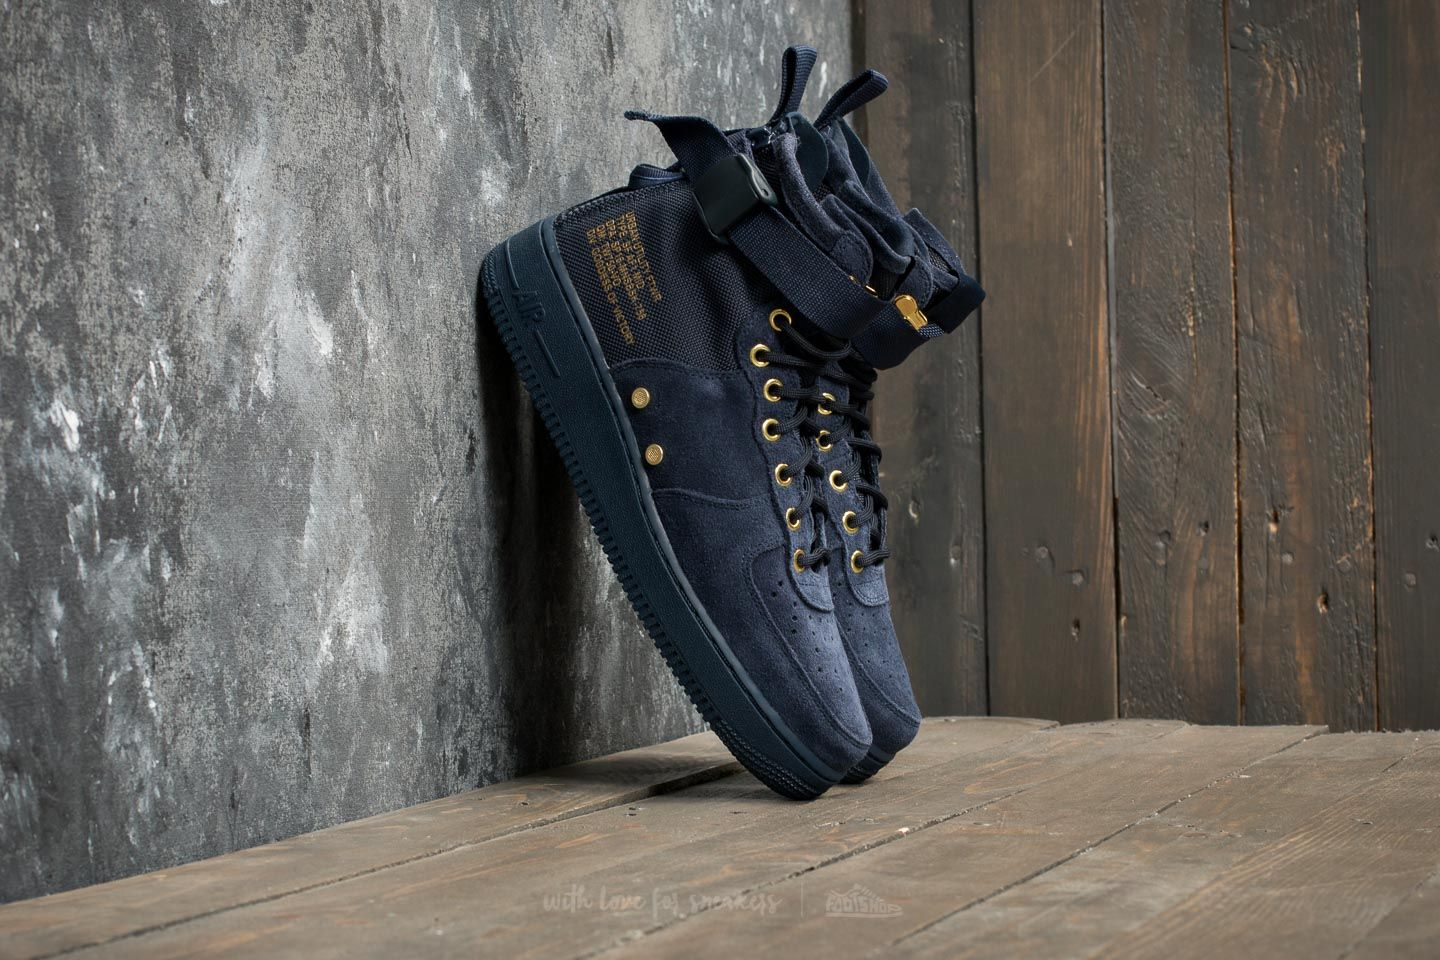 Nike SF Air Force 1 Mid Obsidian/ Obsidian/ Black